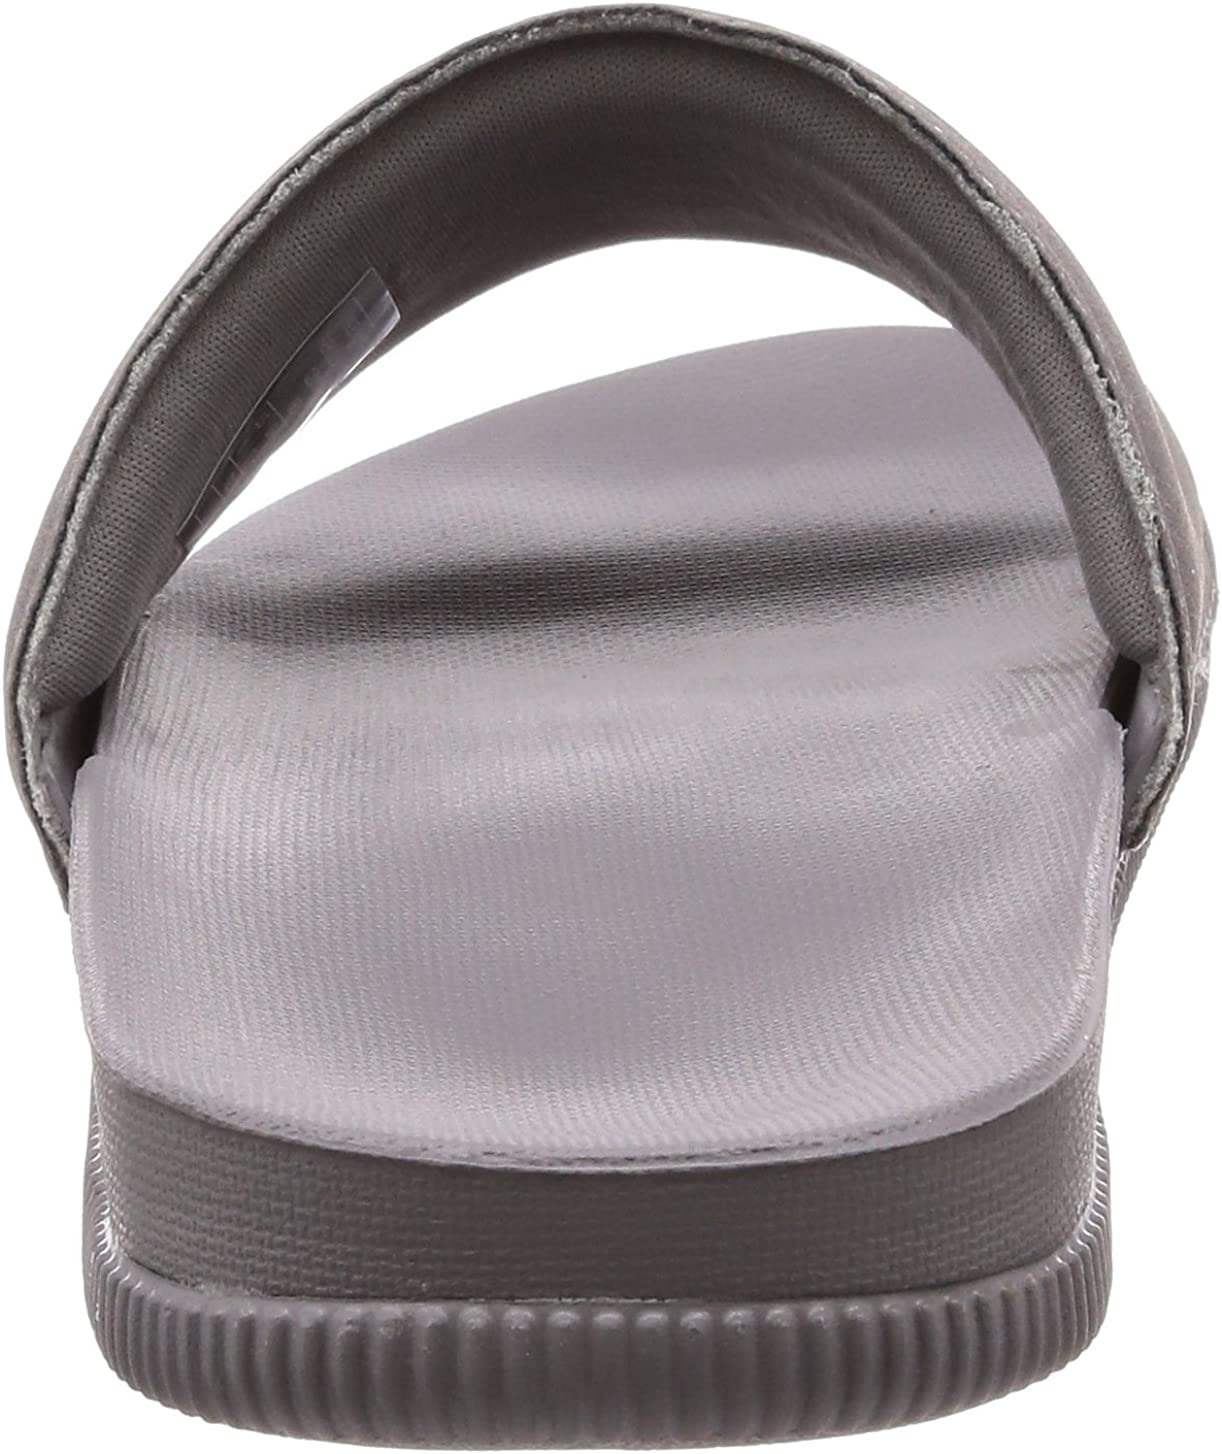 AND1 AND 1 OMNI SLIDE Memory Foam Sport Sandals NWT Men/'s Sizes 8 9 10 11 or 12